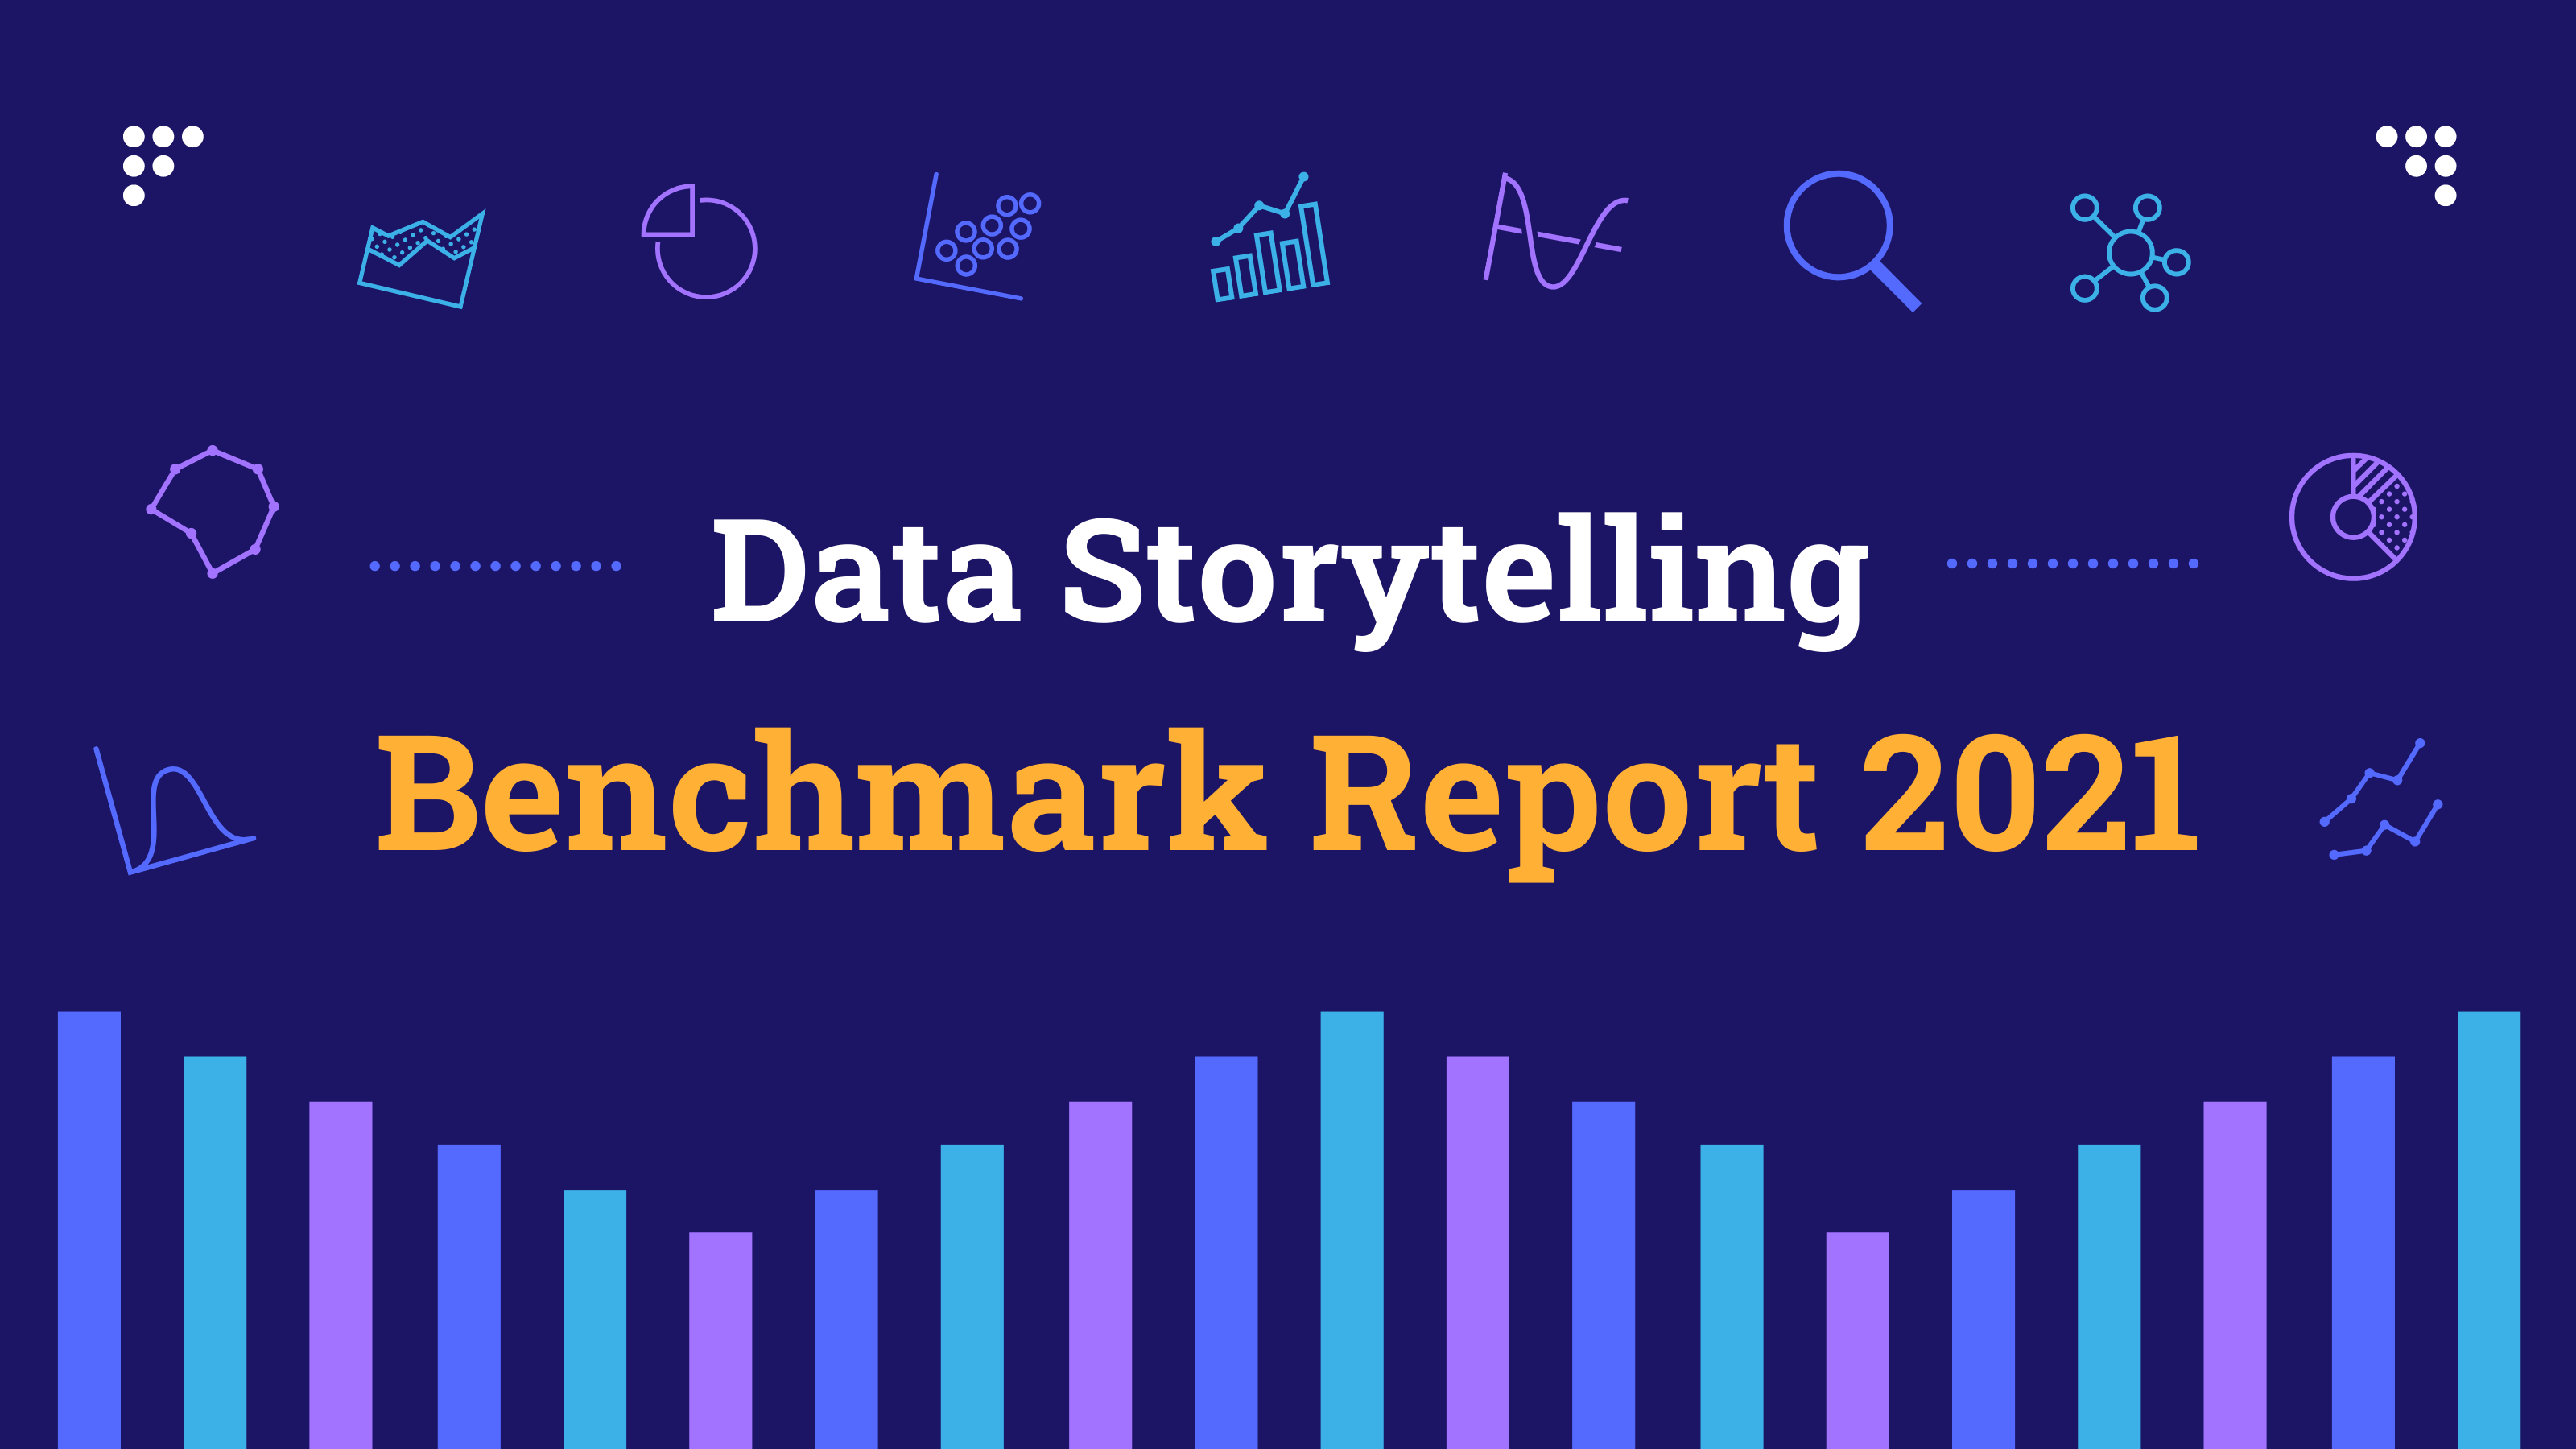 Data Storytelling Marketing Benchmark Report 2021 Blog Header